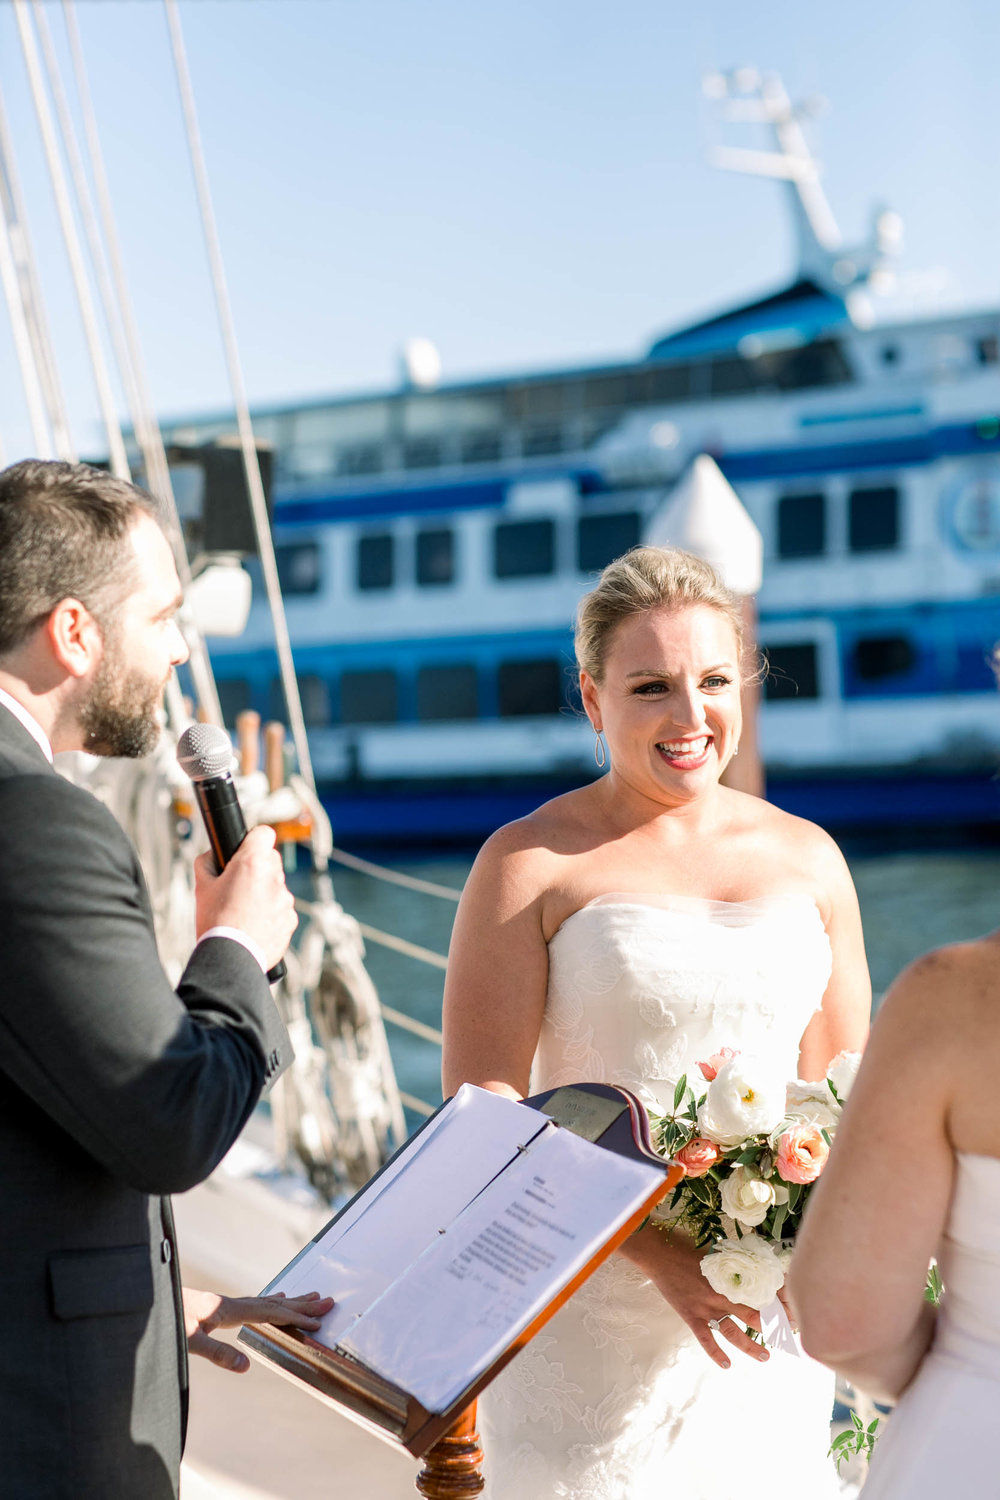 092218ER473_Sausalito Yacht Club Wedding_Buena Lane Photography.jpg